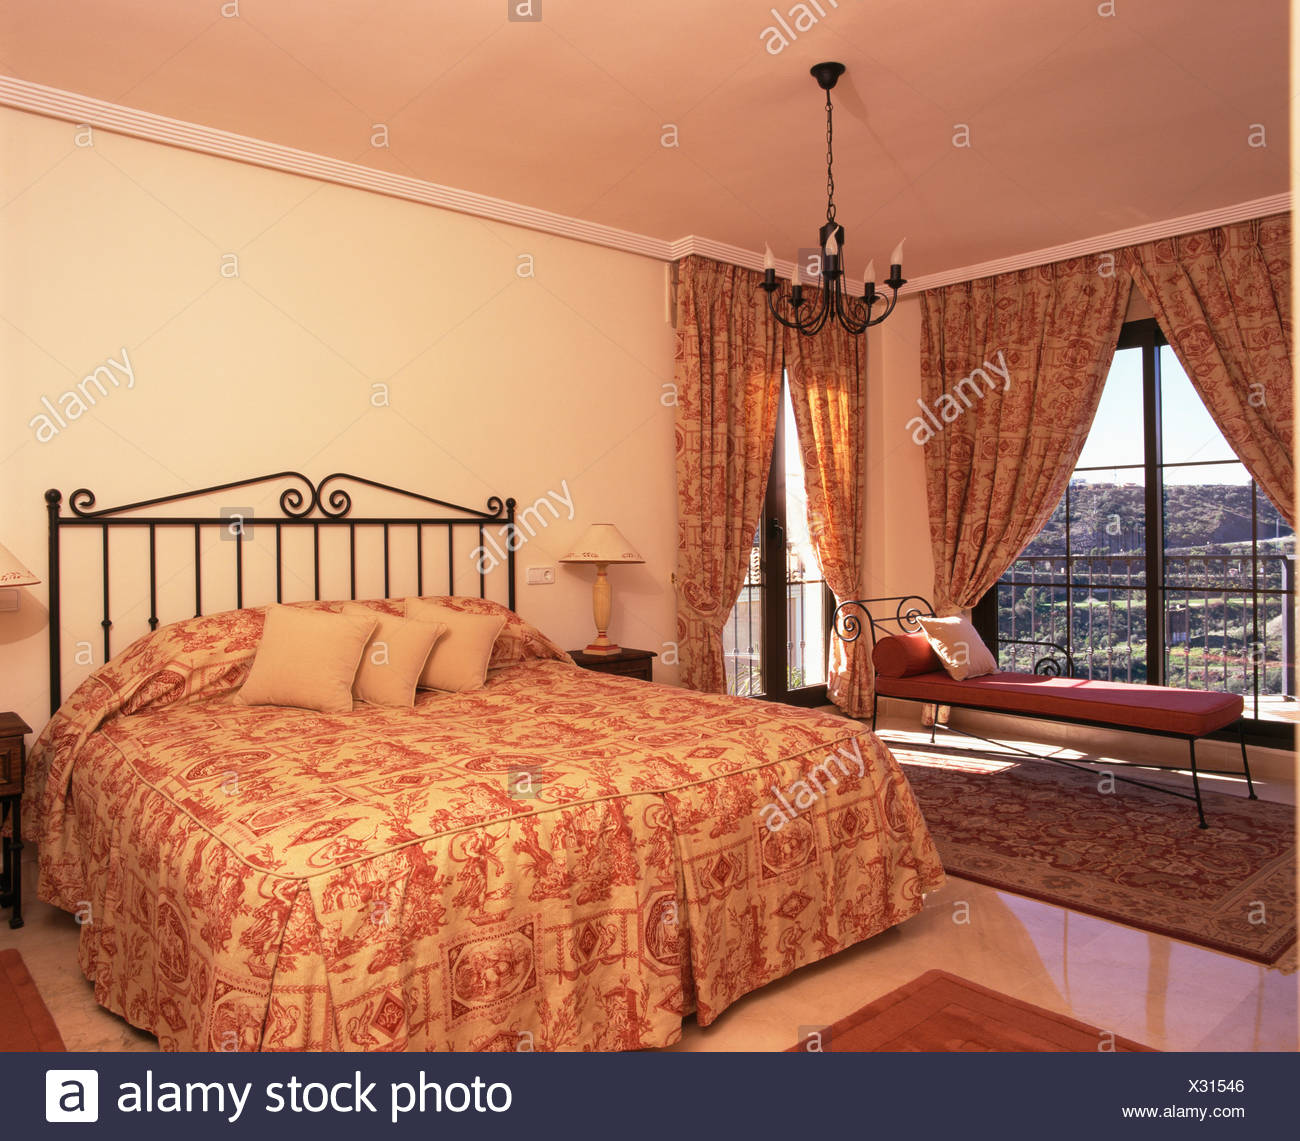 Toile De Jouy Quilt On Wrought Iron Bed In Spanish Bedroom With